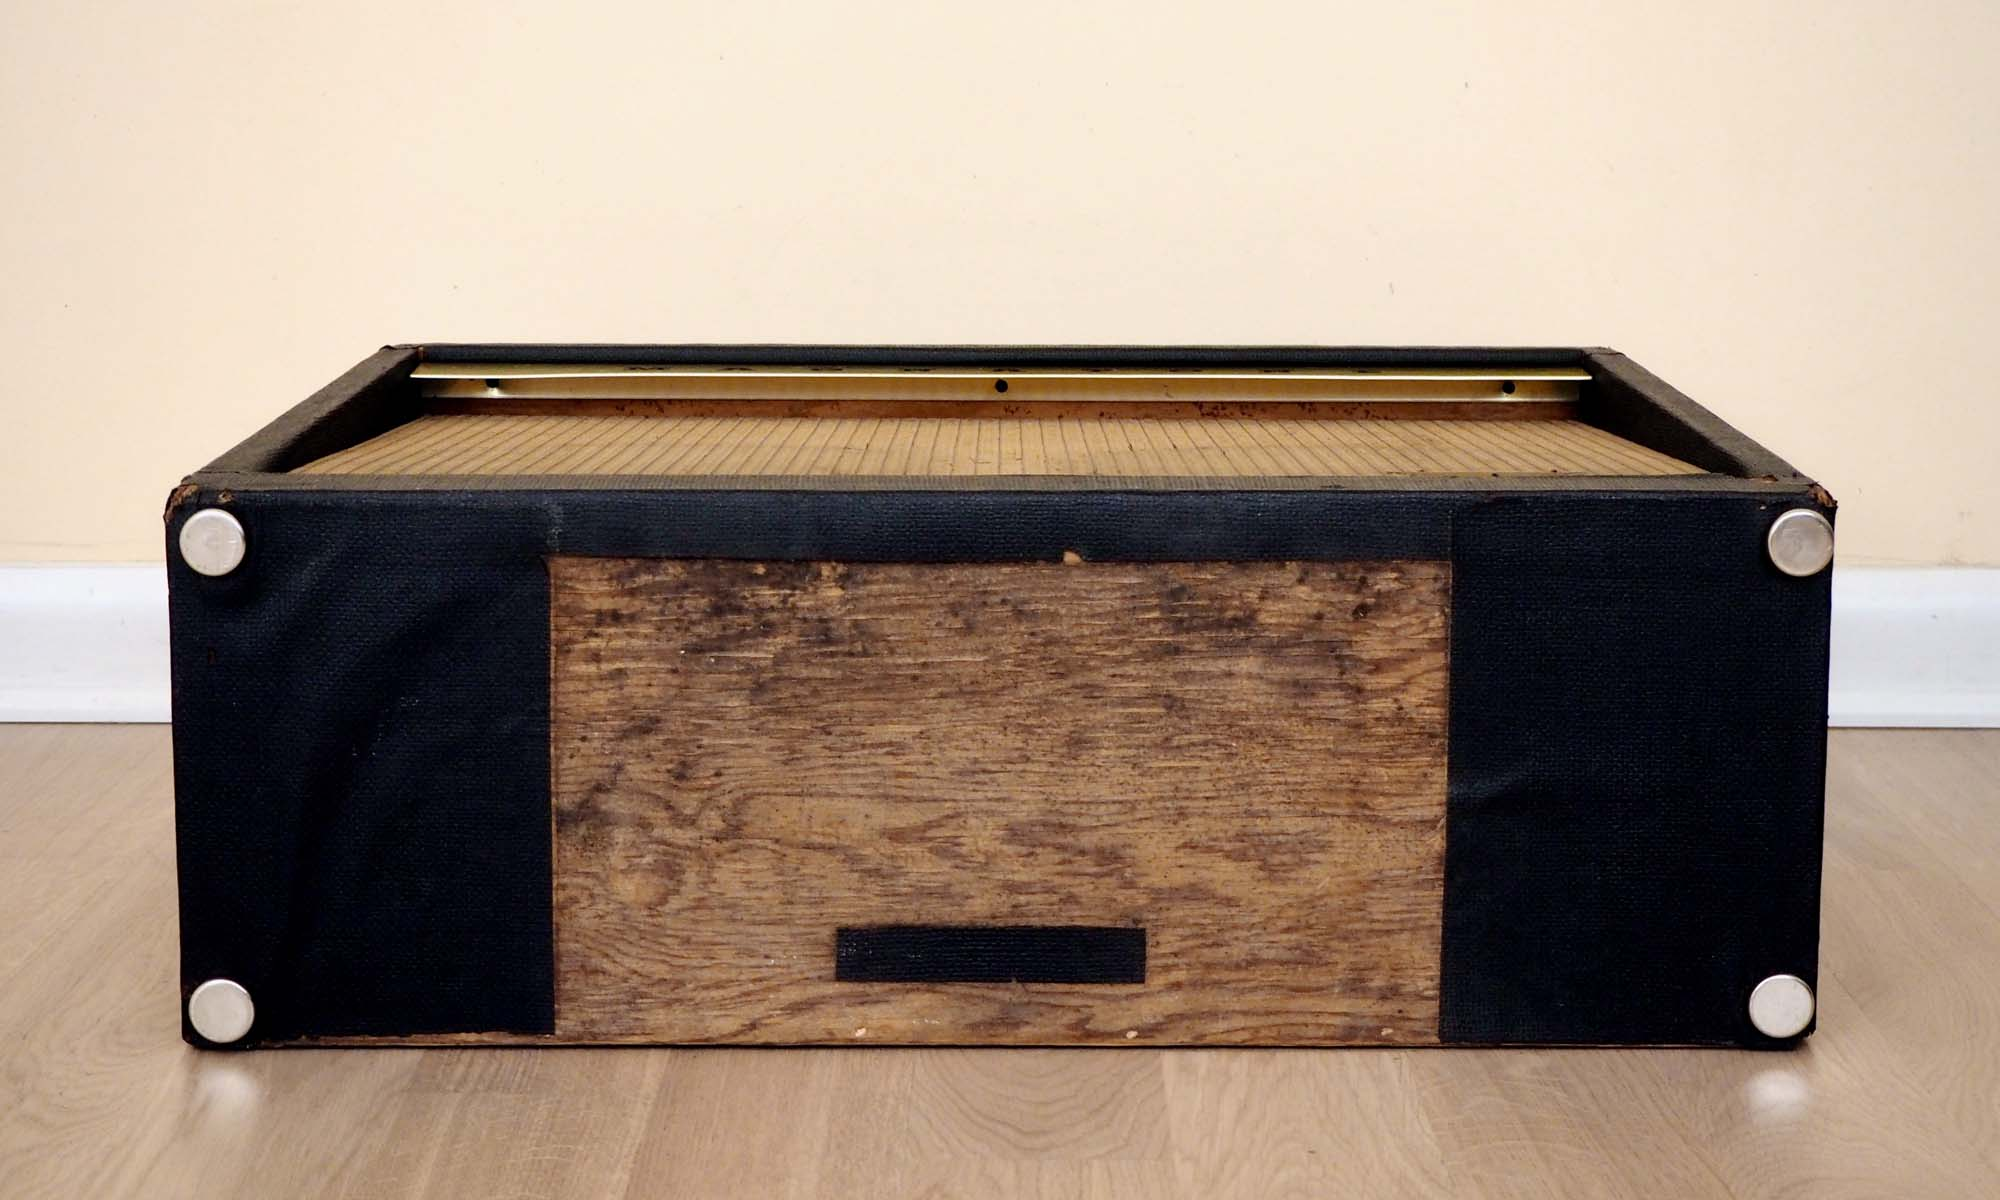 1960 Magnatone 260 Vintage 2x12 Tube Guitar Amplifier Fully Serviced w/ Pitch Shifting Vibrato